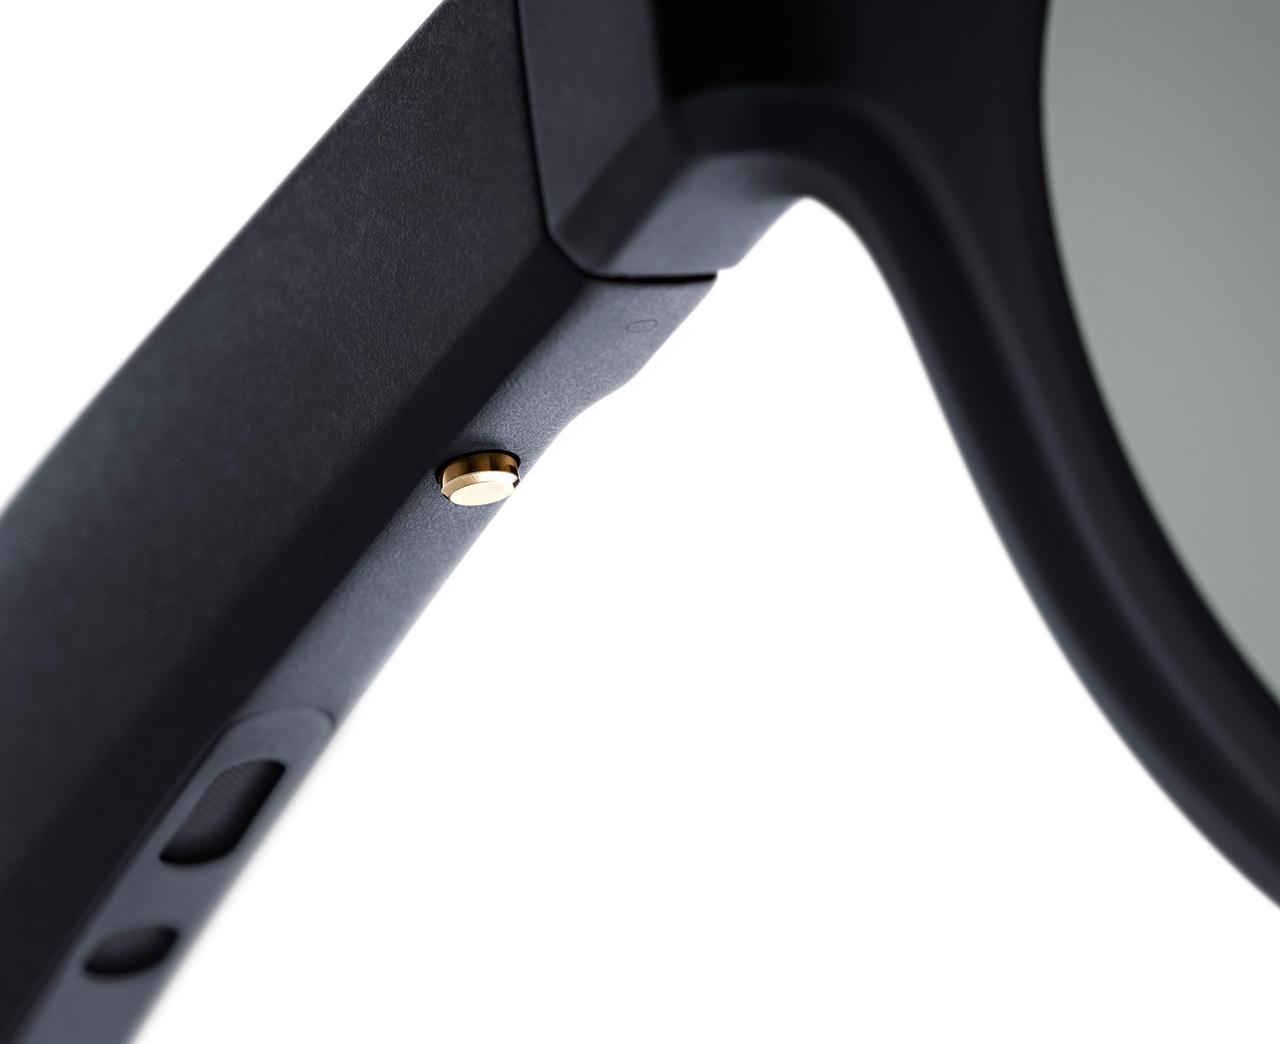 Bose Frames are sunglasses with speakers (and AR) - SlashGear